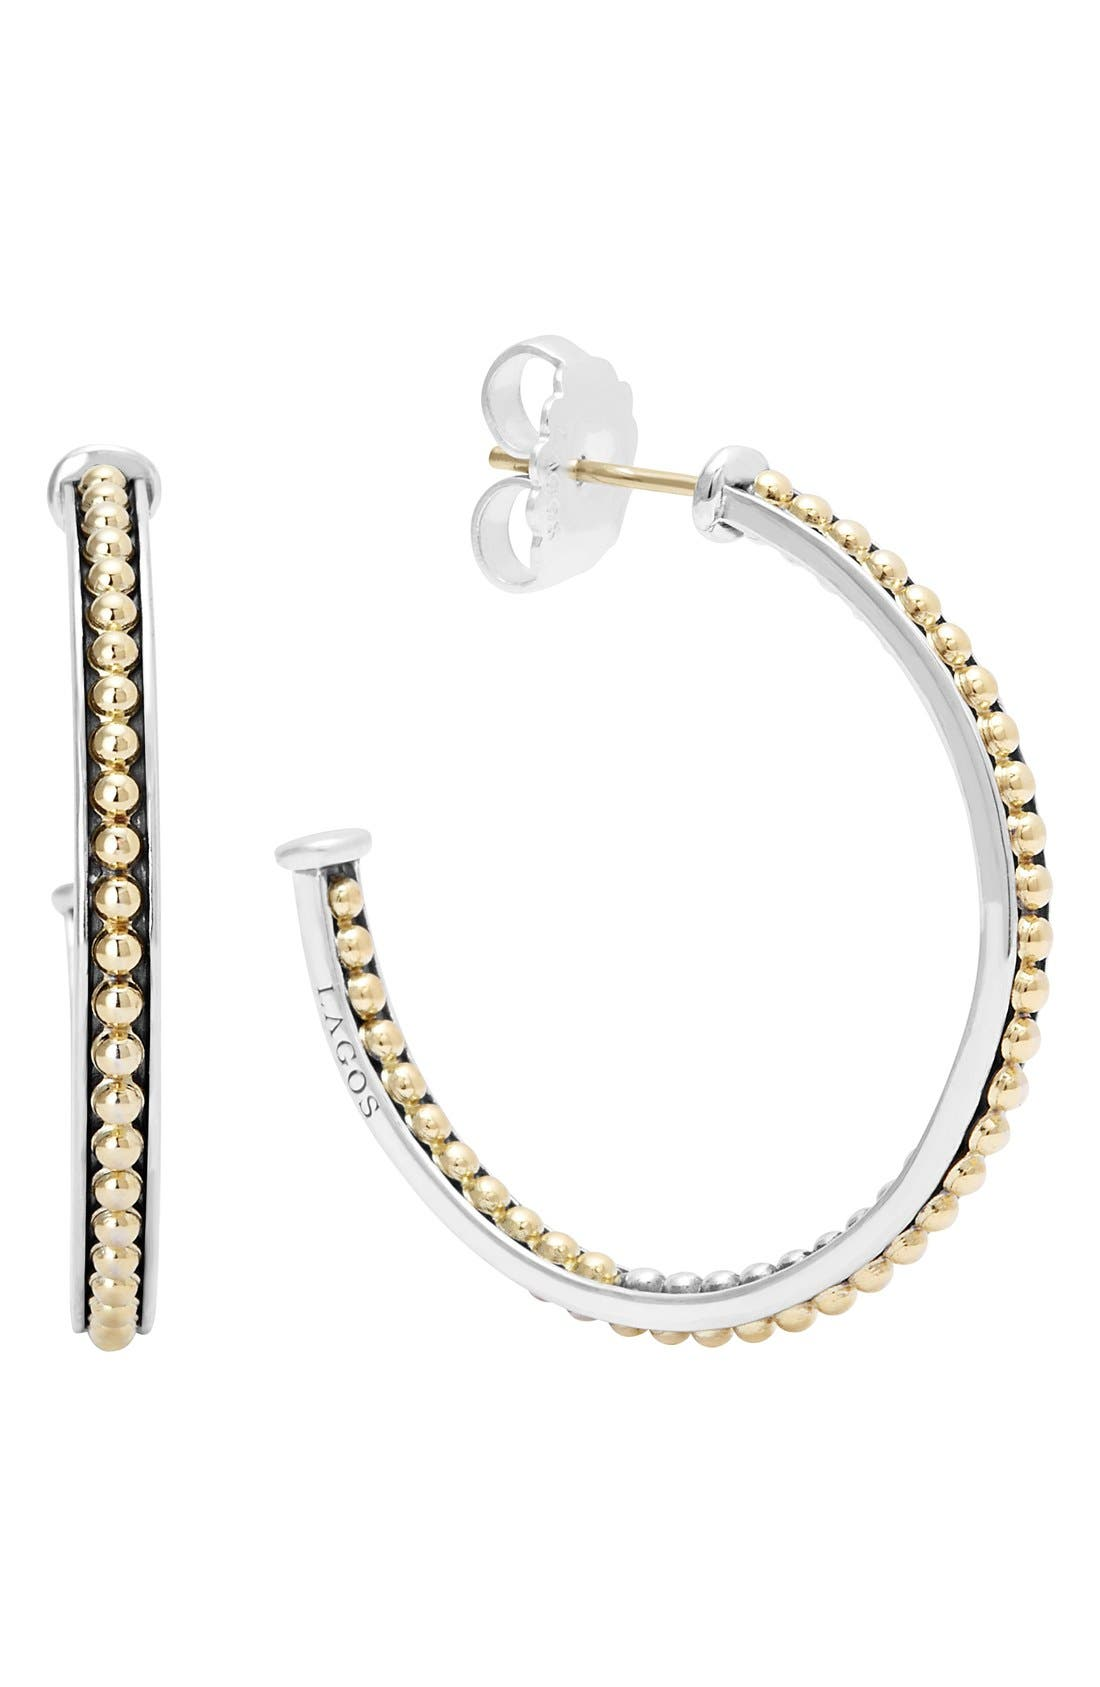 'Enso' Caviar Hoop Earrings,                         Main,                         color, Silver/ Gold